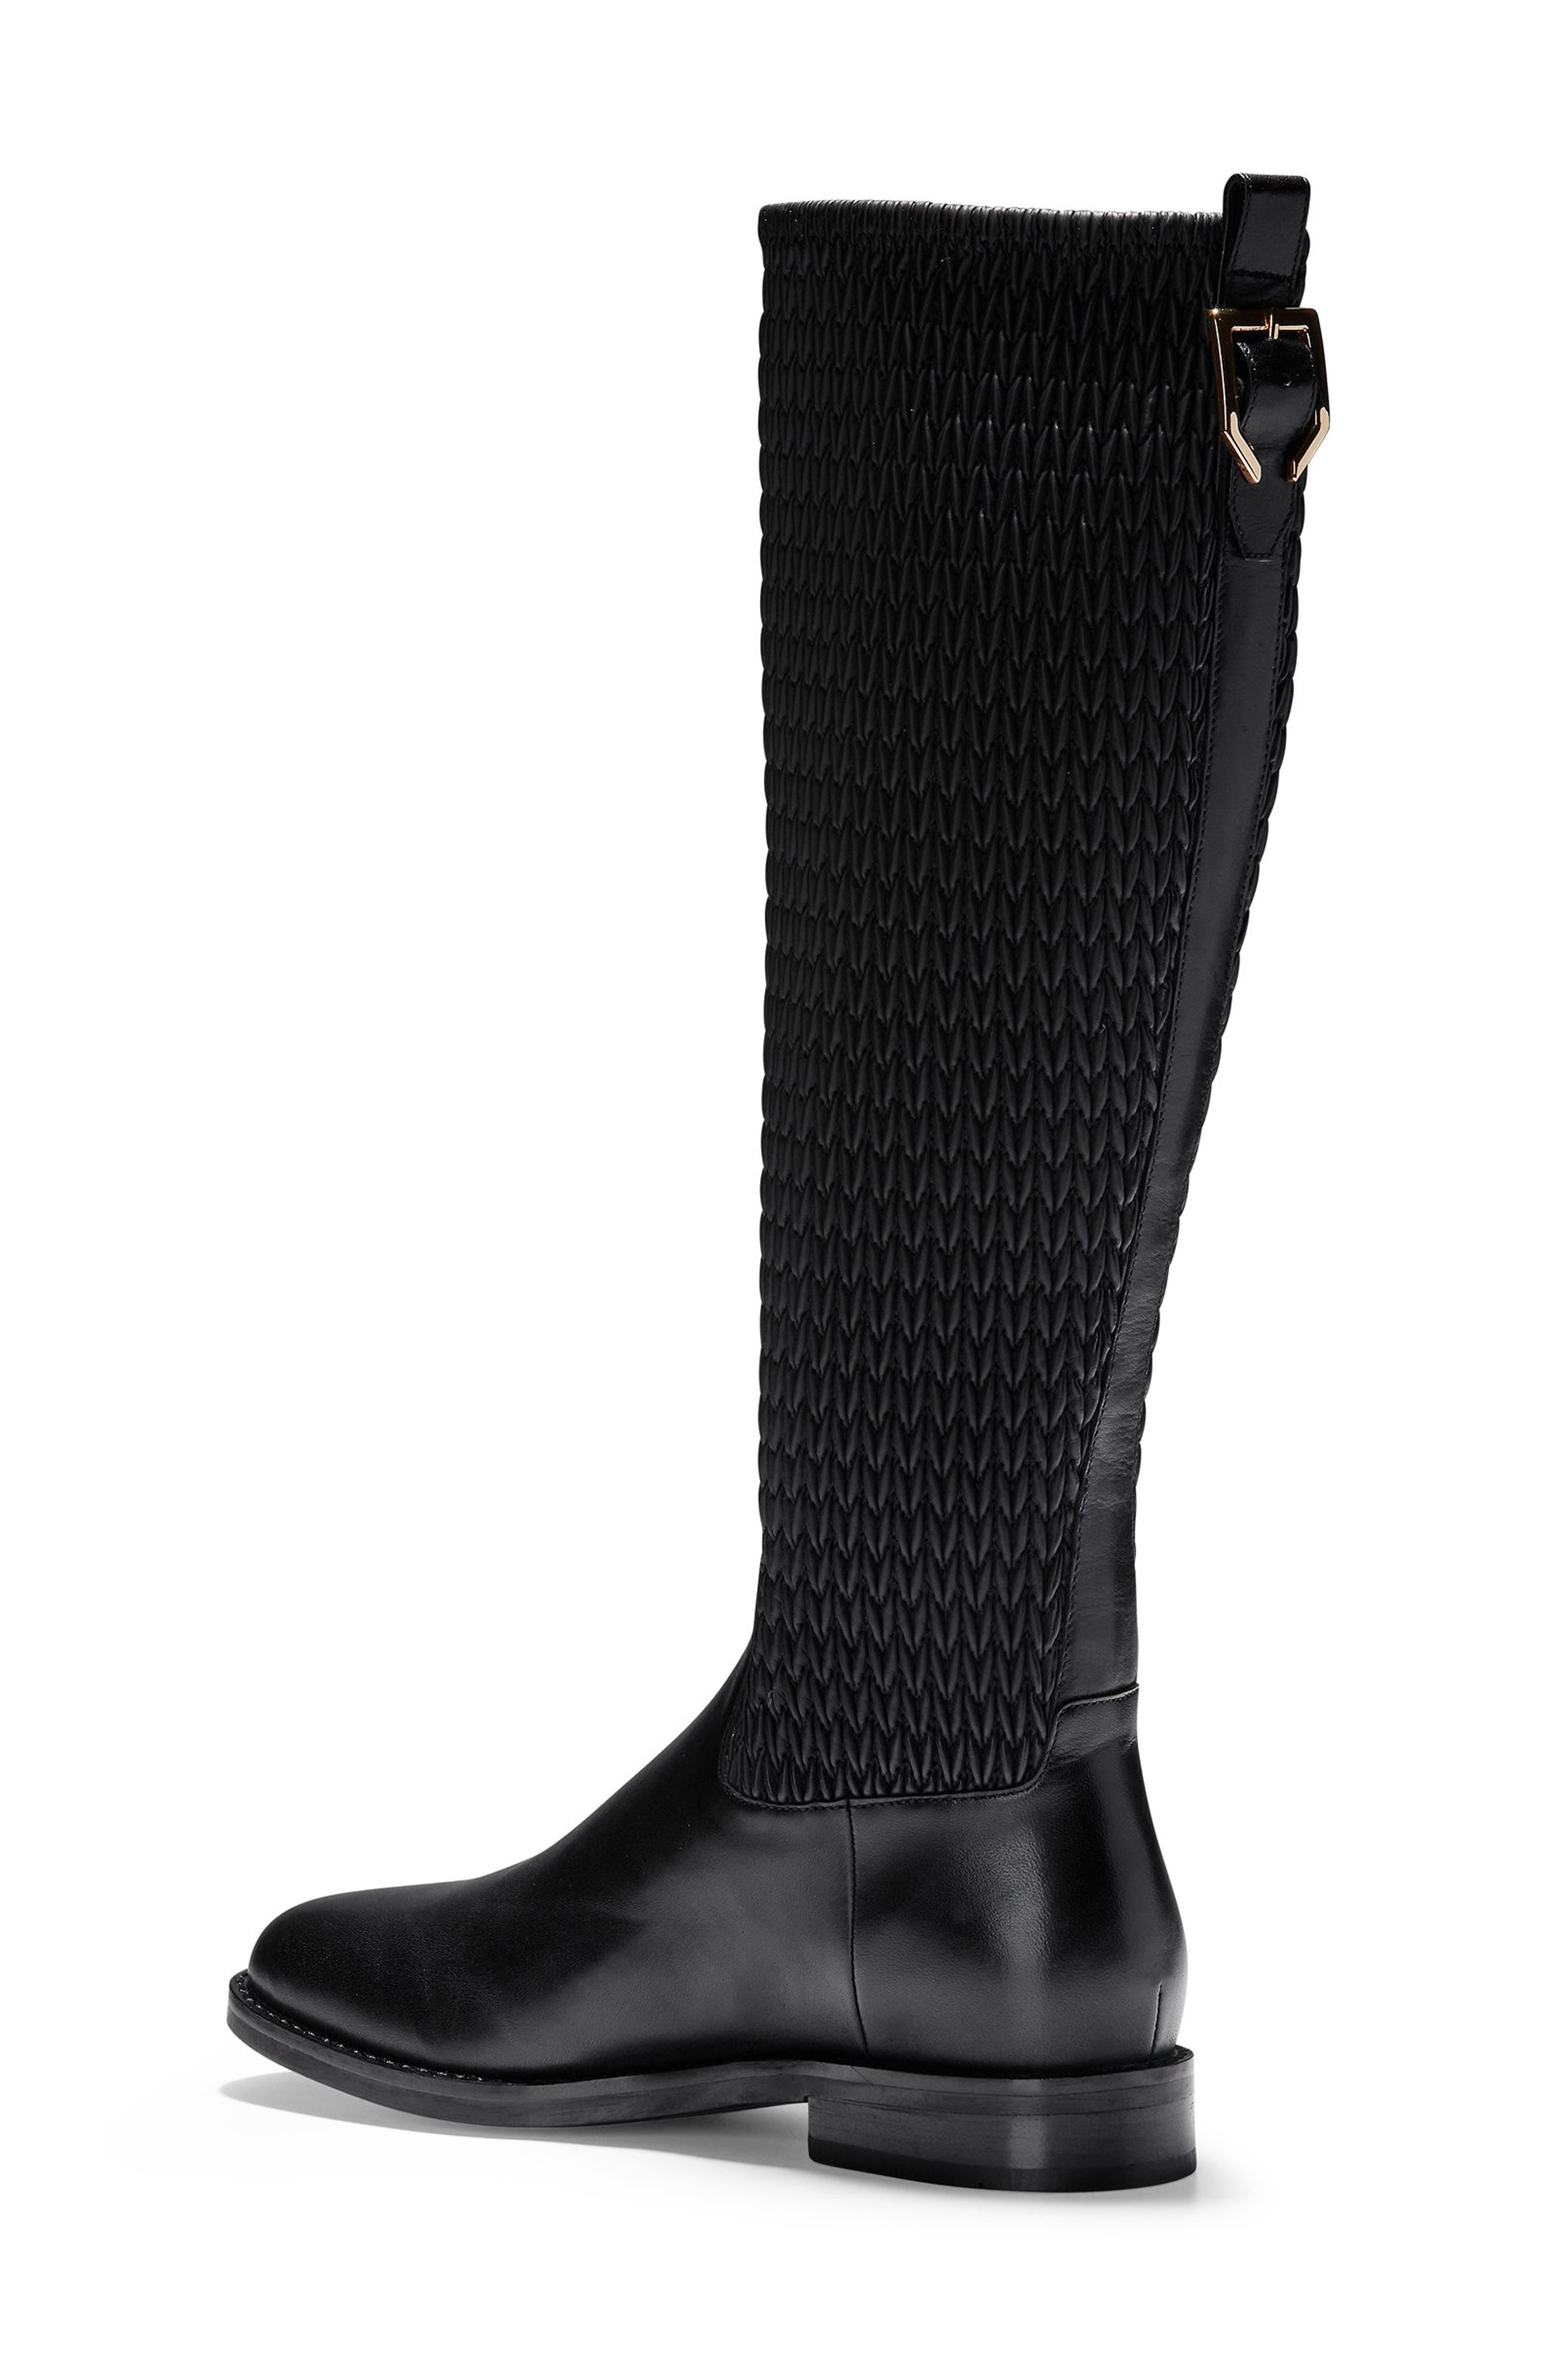 Lexi Grand Knee High Stretch Boot,                             Alternate thumbnail 2, color,                             BLACK LEATHER